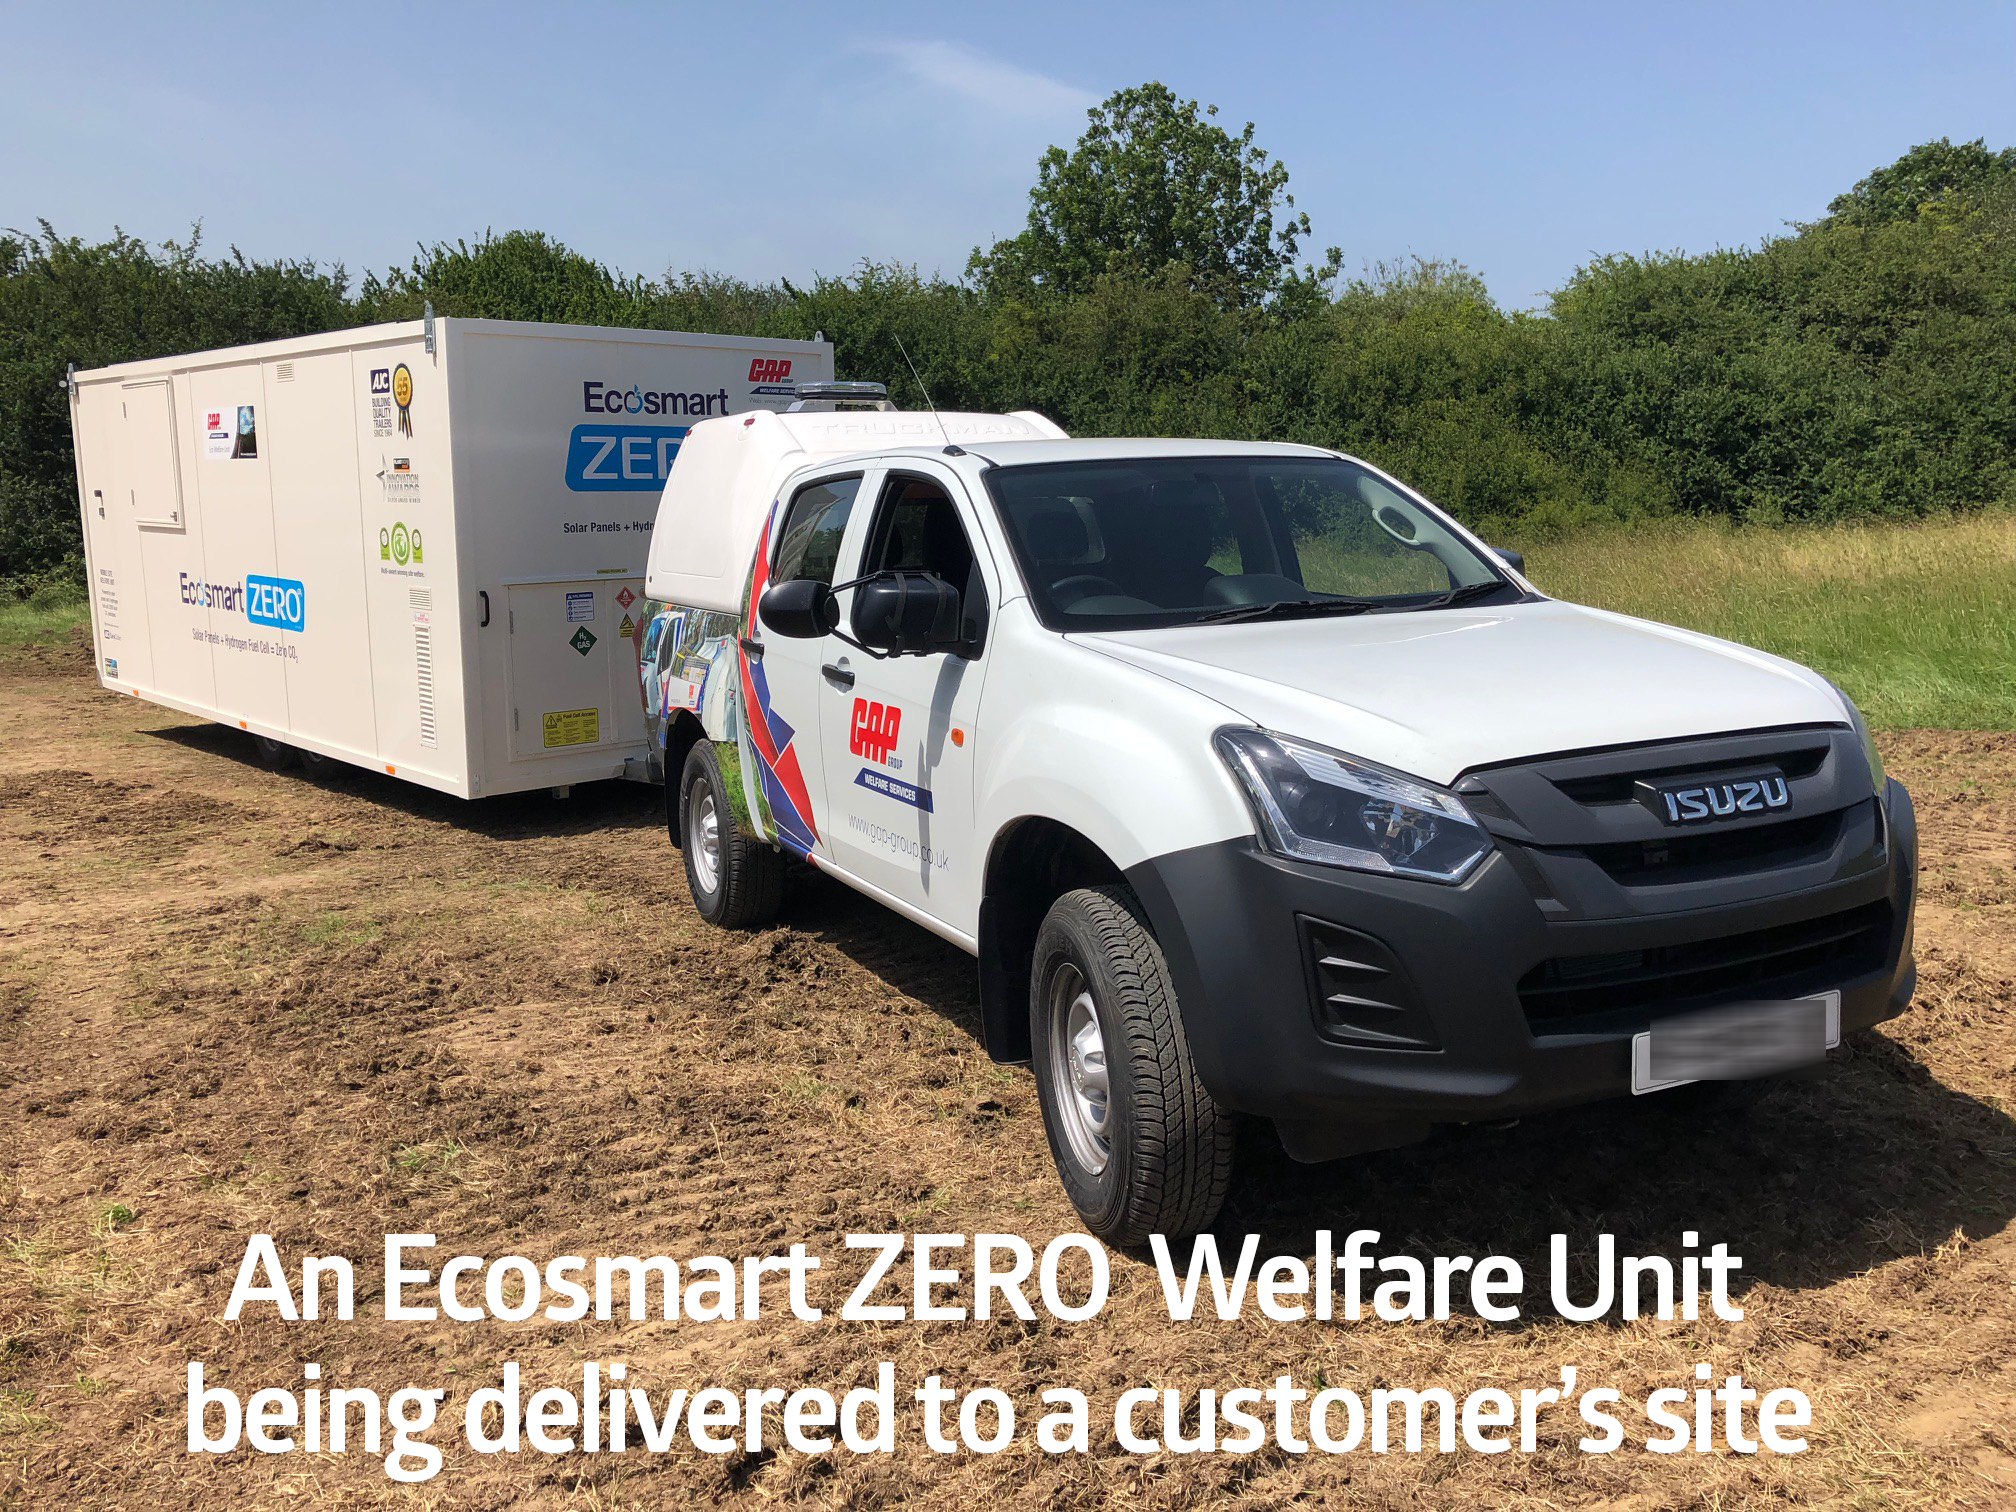 Ecosmart Welfare Unit being delivered to a customer's site